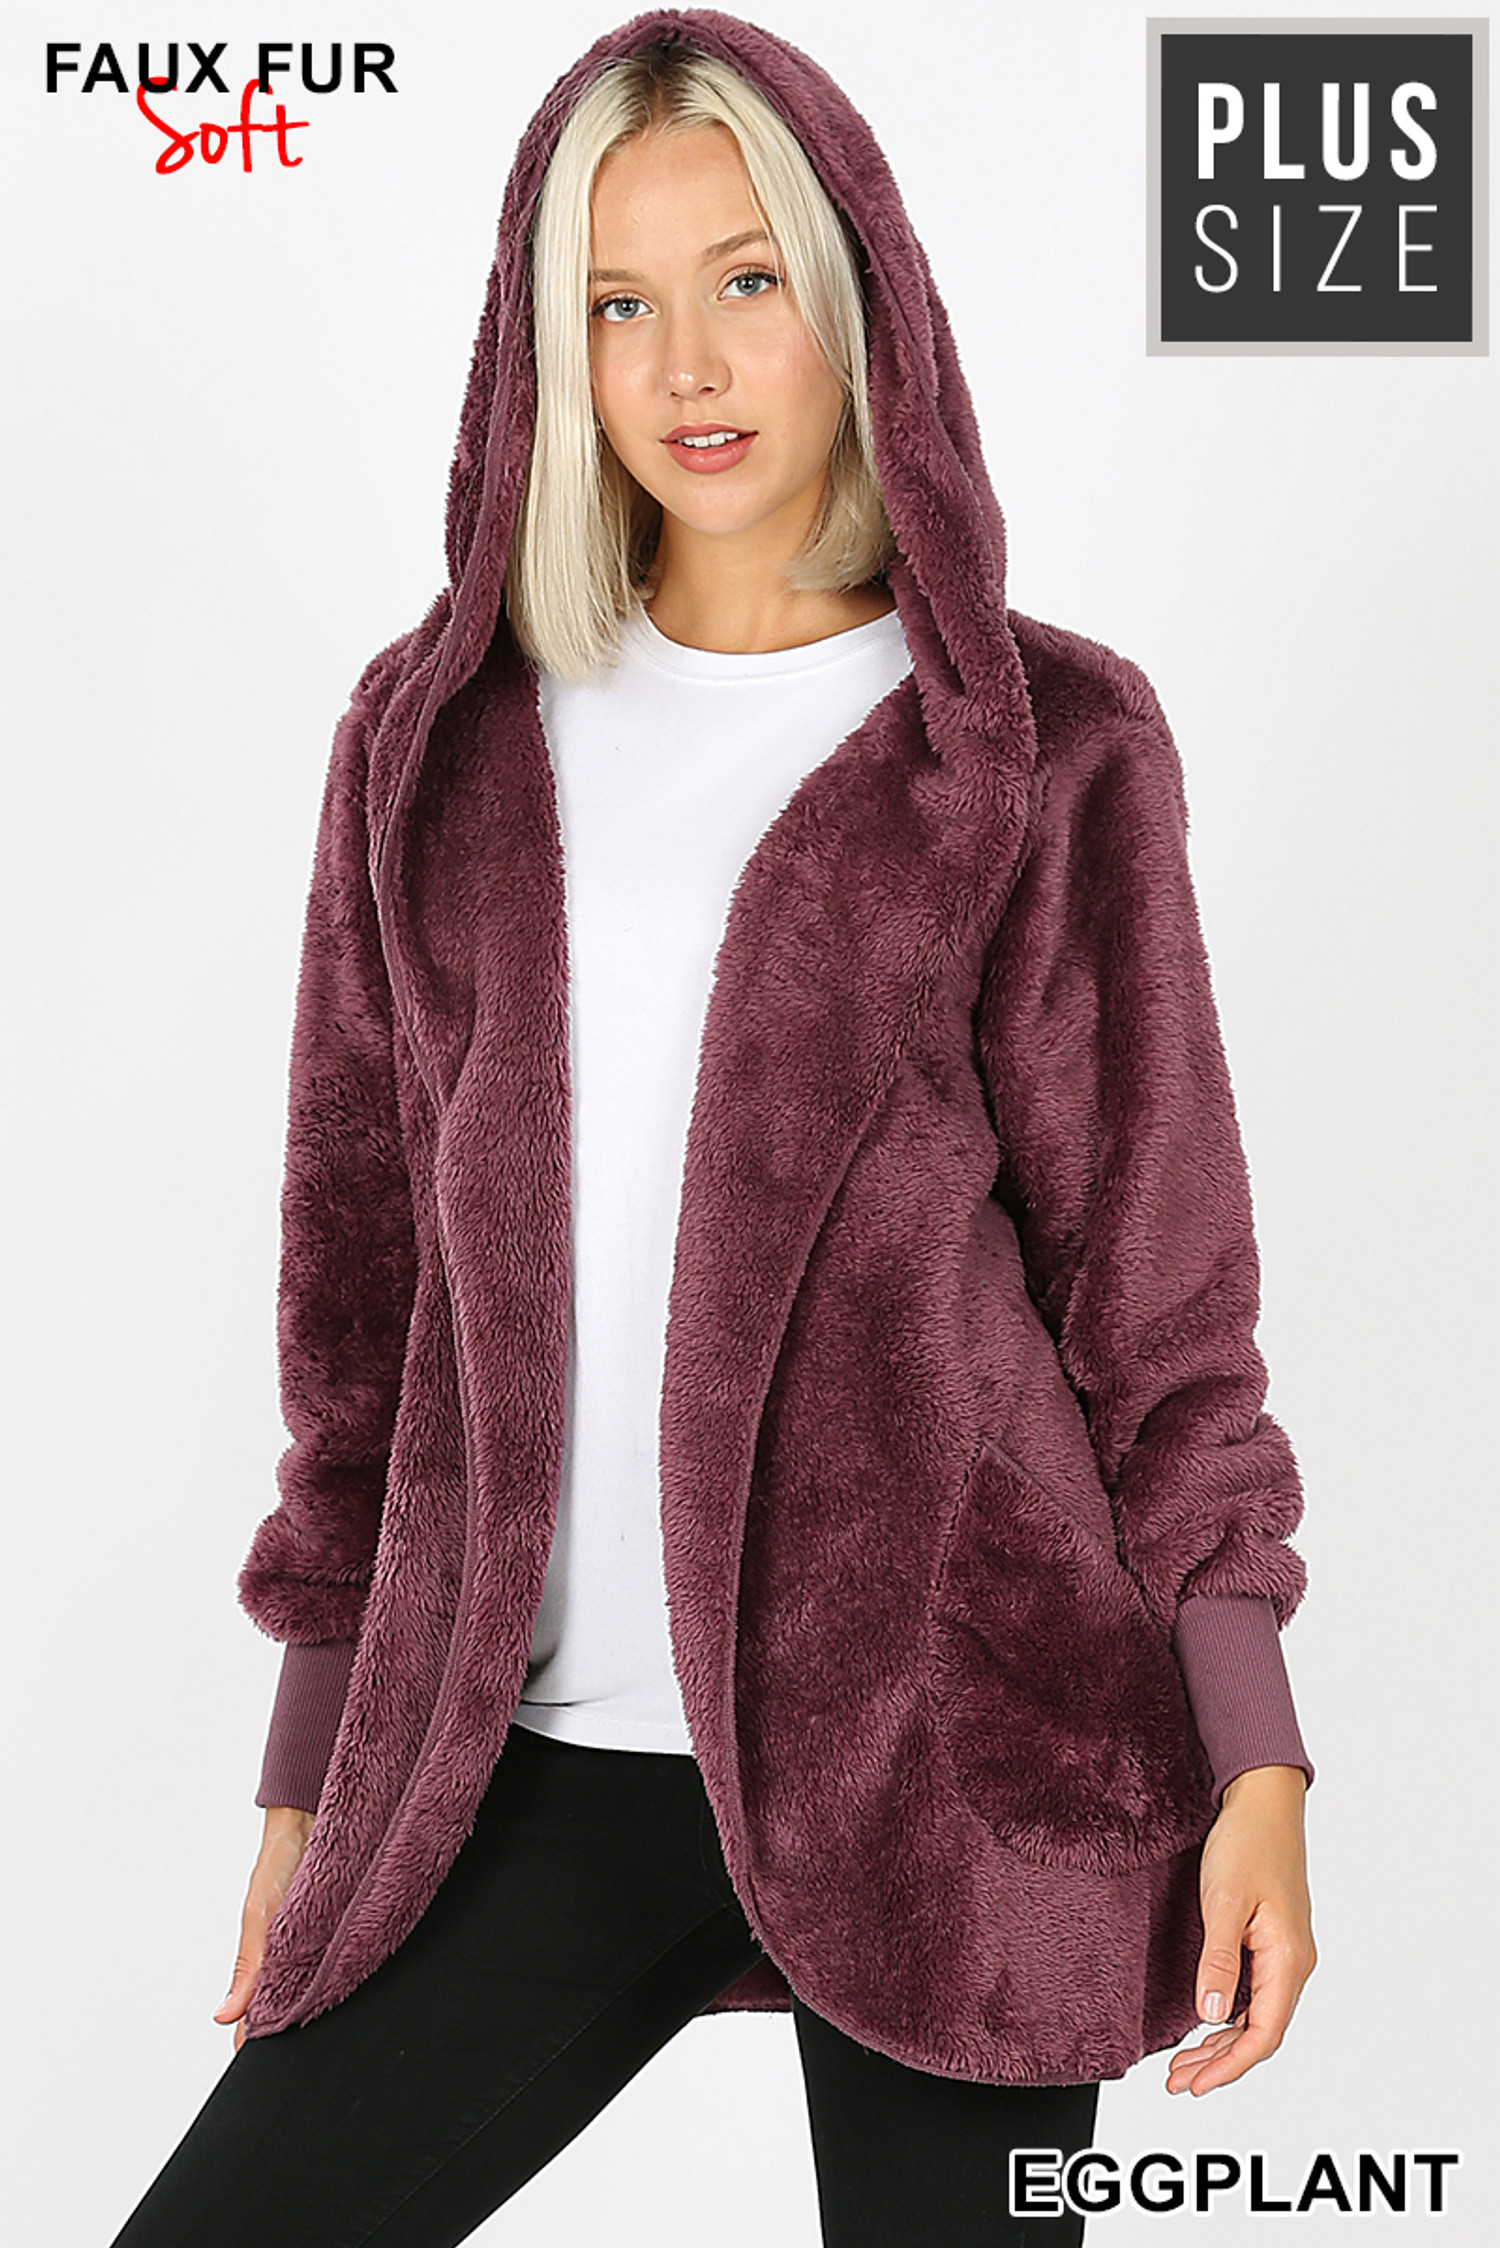 Front Image of Eggplant Faux Fur Hooded Cocoon Plus Size Jacket with Pockets showing hood up